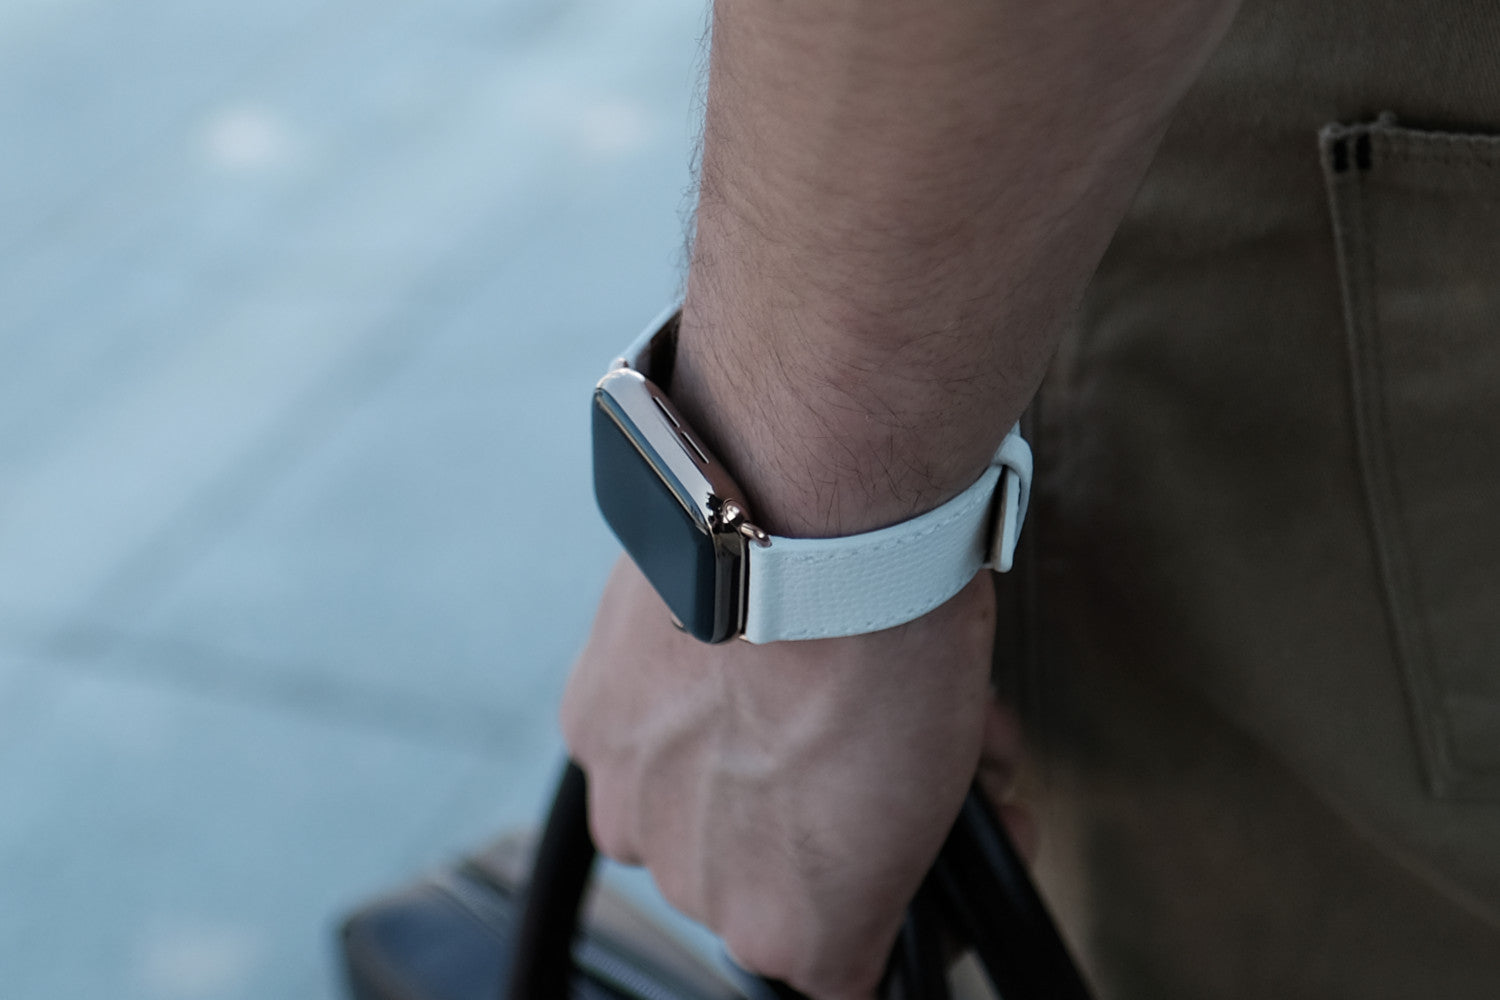 Epsom Leather Apple Watch Bands by Pin & Buckle